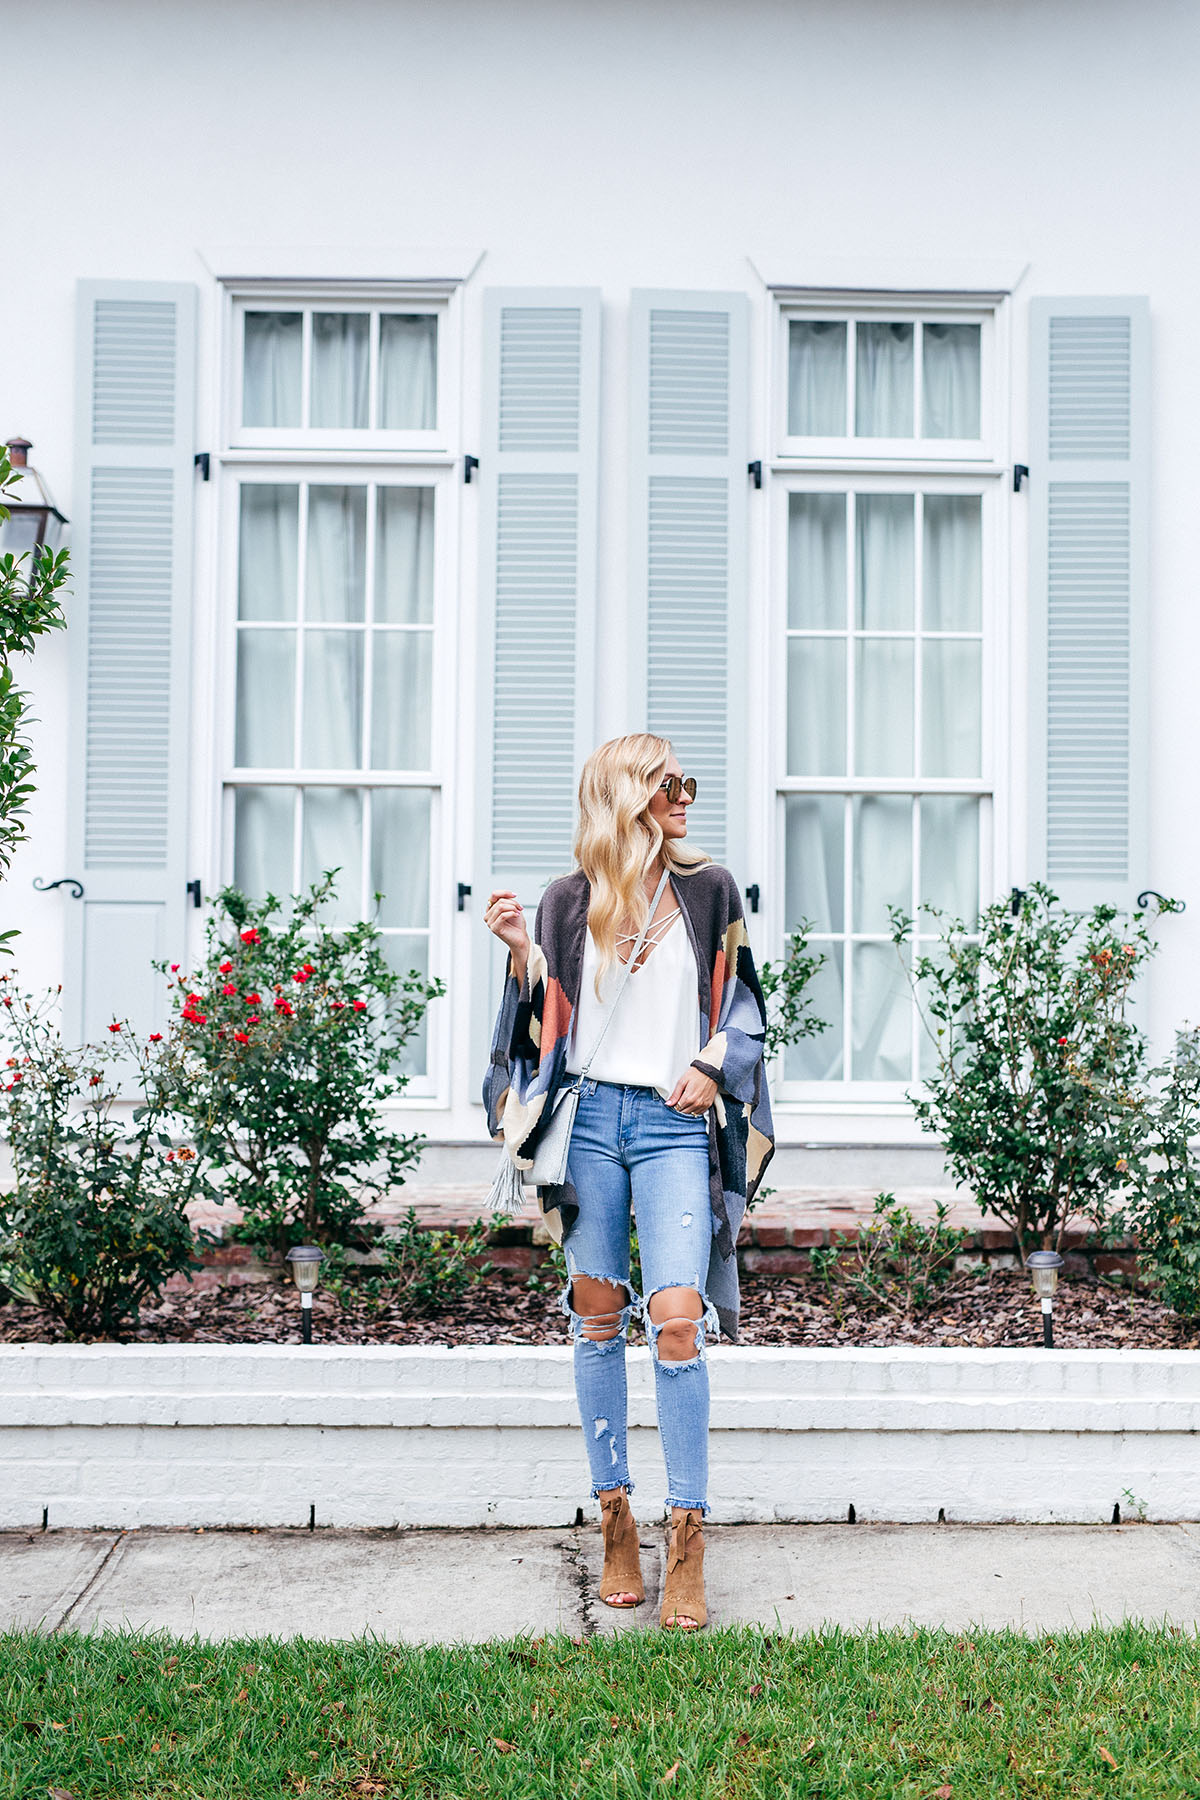 Late Summer Outfit Ideas | Transitioning Into Fall | Distressed Denim | Patterned Kimono